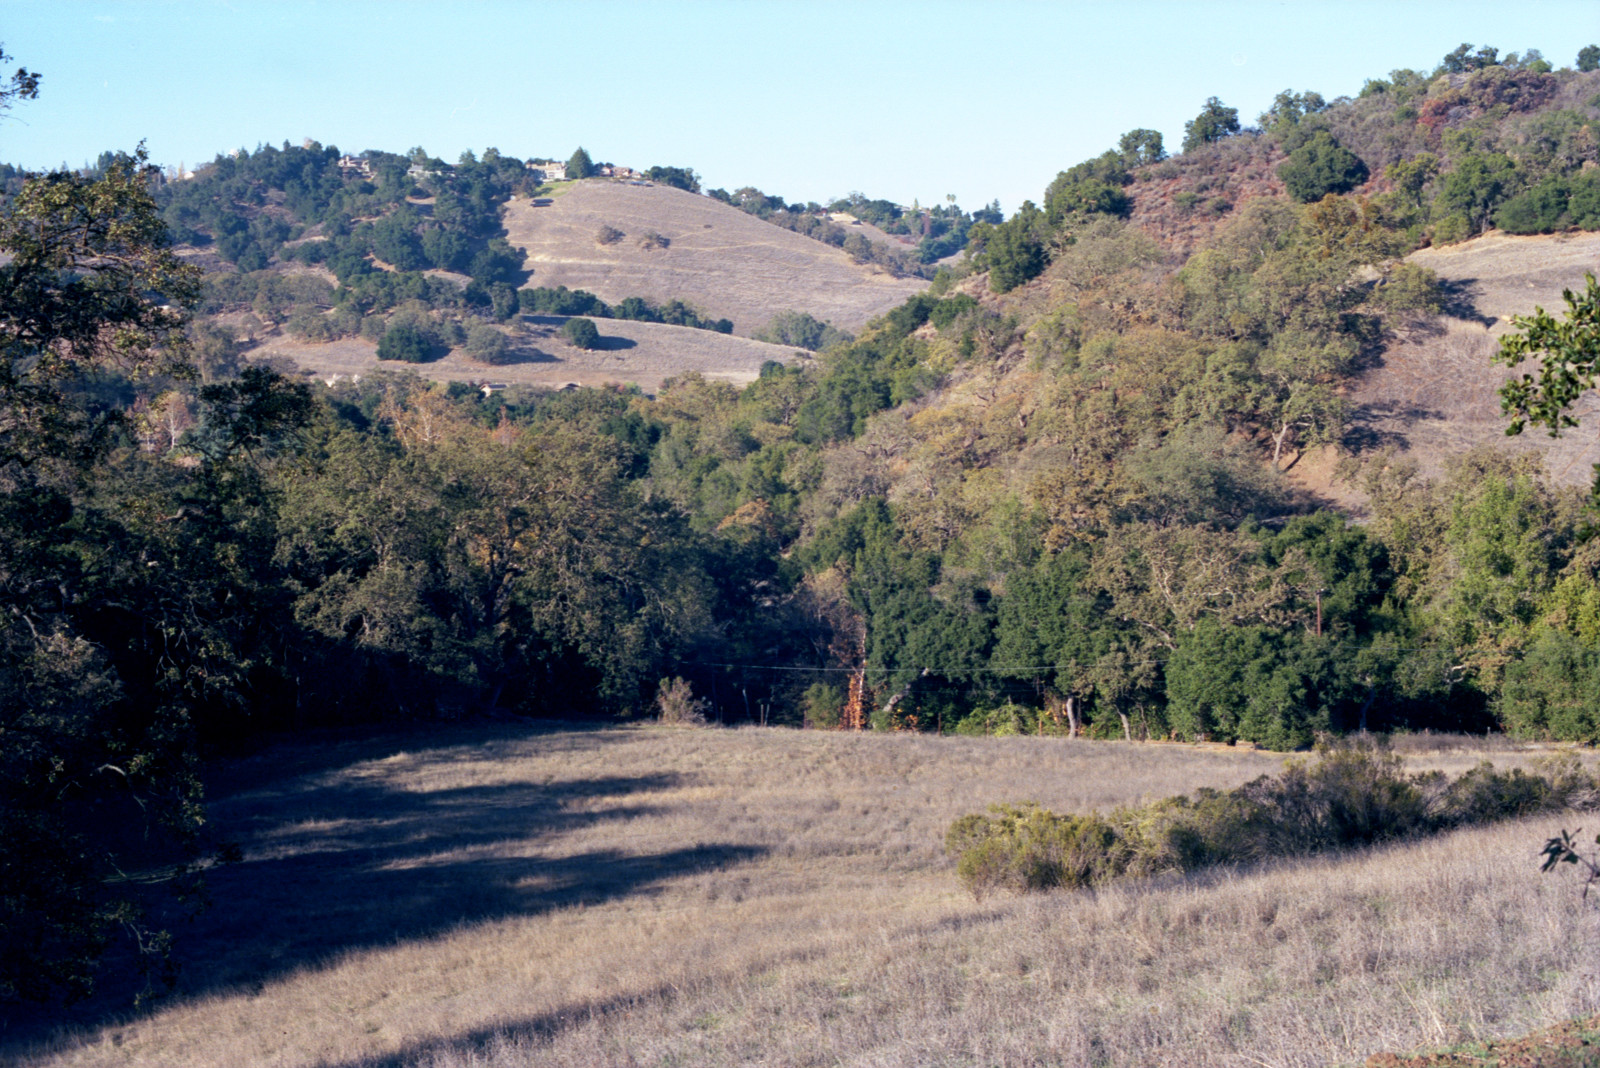 Meadow and hillside at Sierra Azul, Santa Cruz Mountains, near Los Gatos.